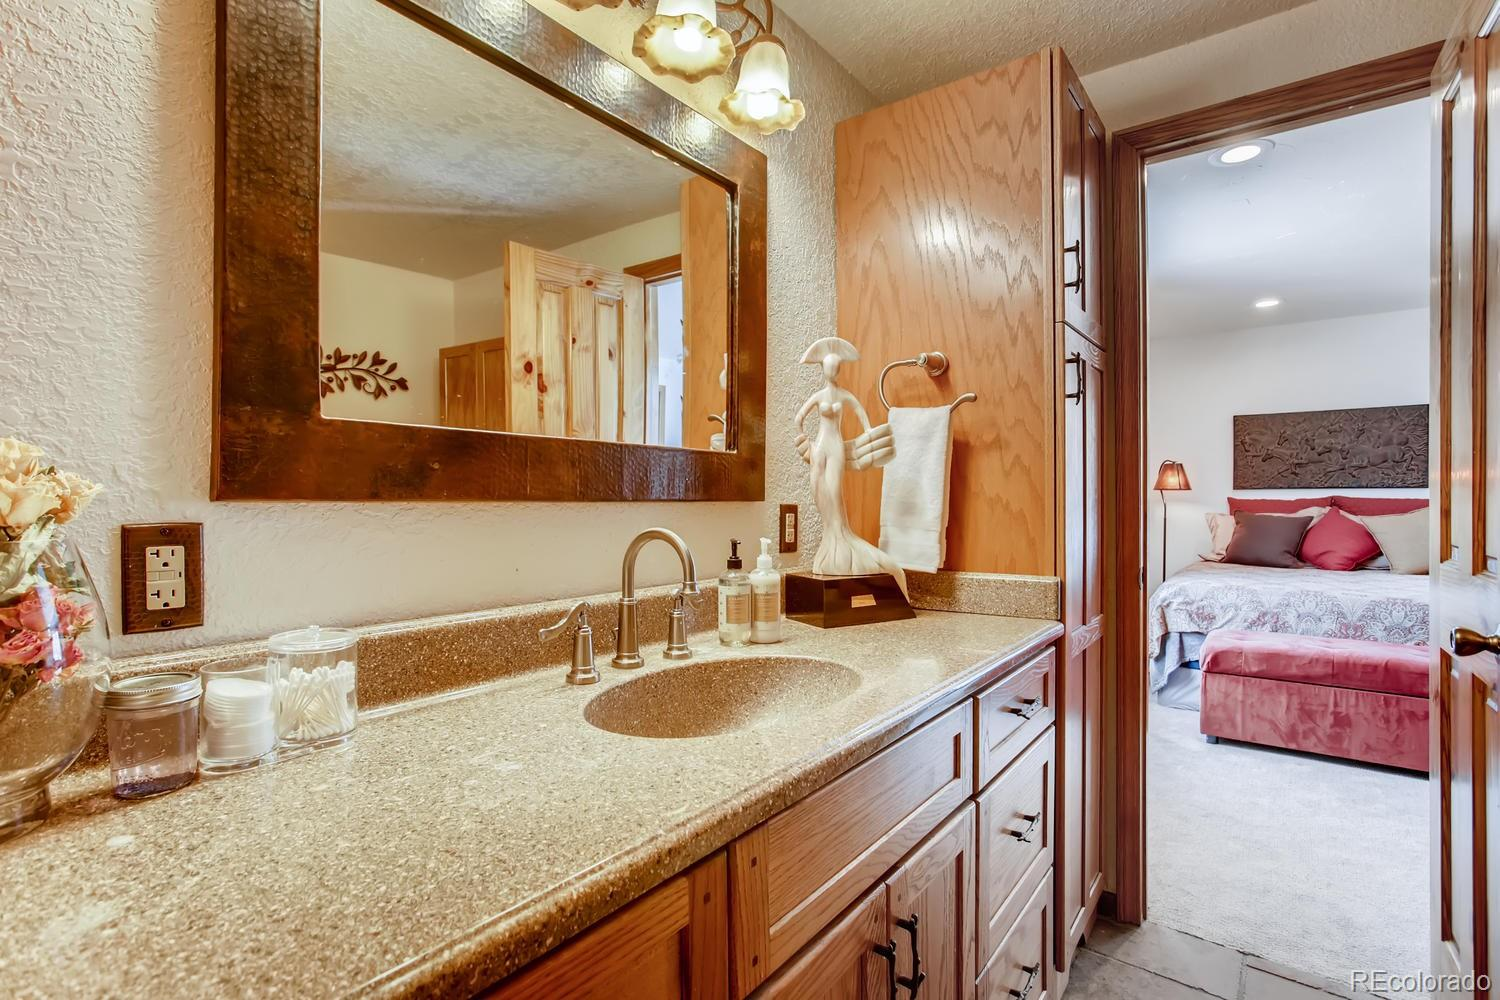 MLS# 4853831 - 11 - 13905 W 6th Place, Golden, CO 80401